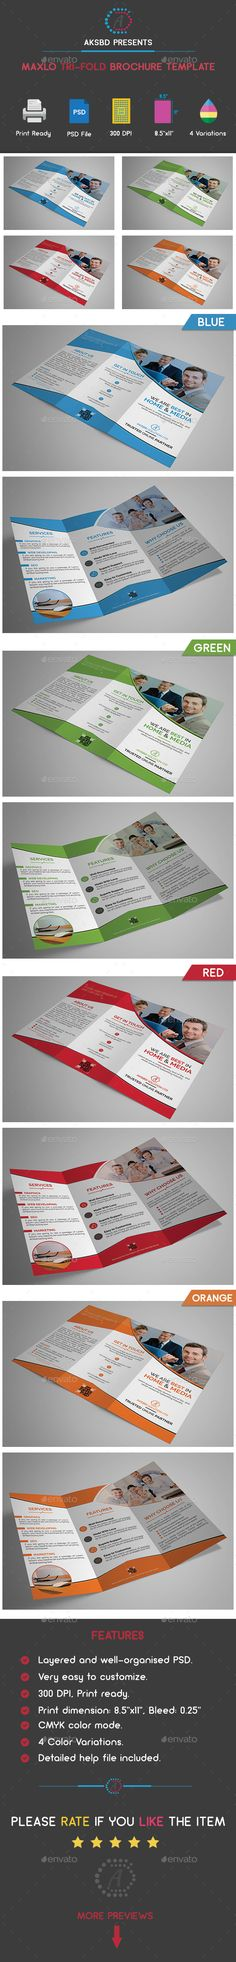 Maxlo Tri-Fold Brochure Template PSD. Download here: https://graphicriver.net/item/maxlo-trifold-brochure-template/17557257?ref=ksioks